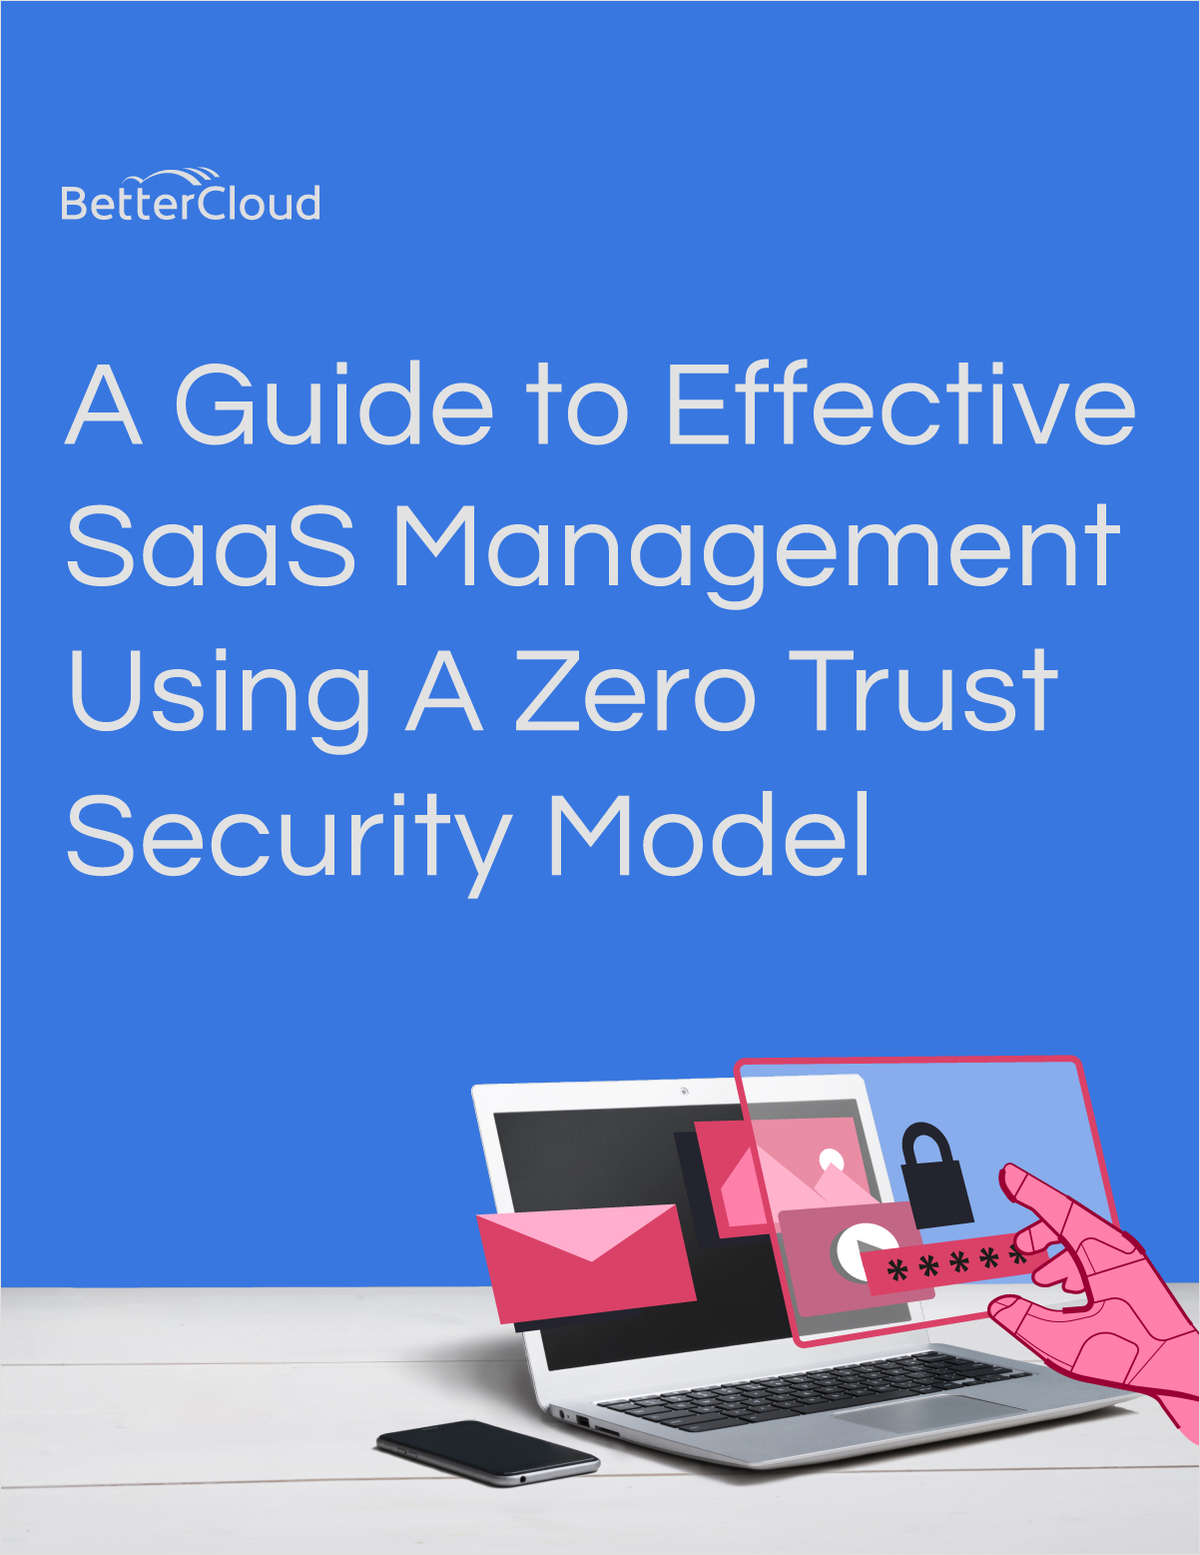 A Guide to Effective SaaS Management Using a Zero Trust Security Model